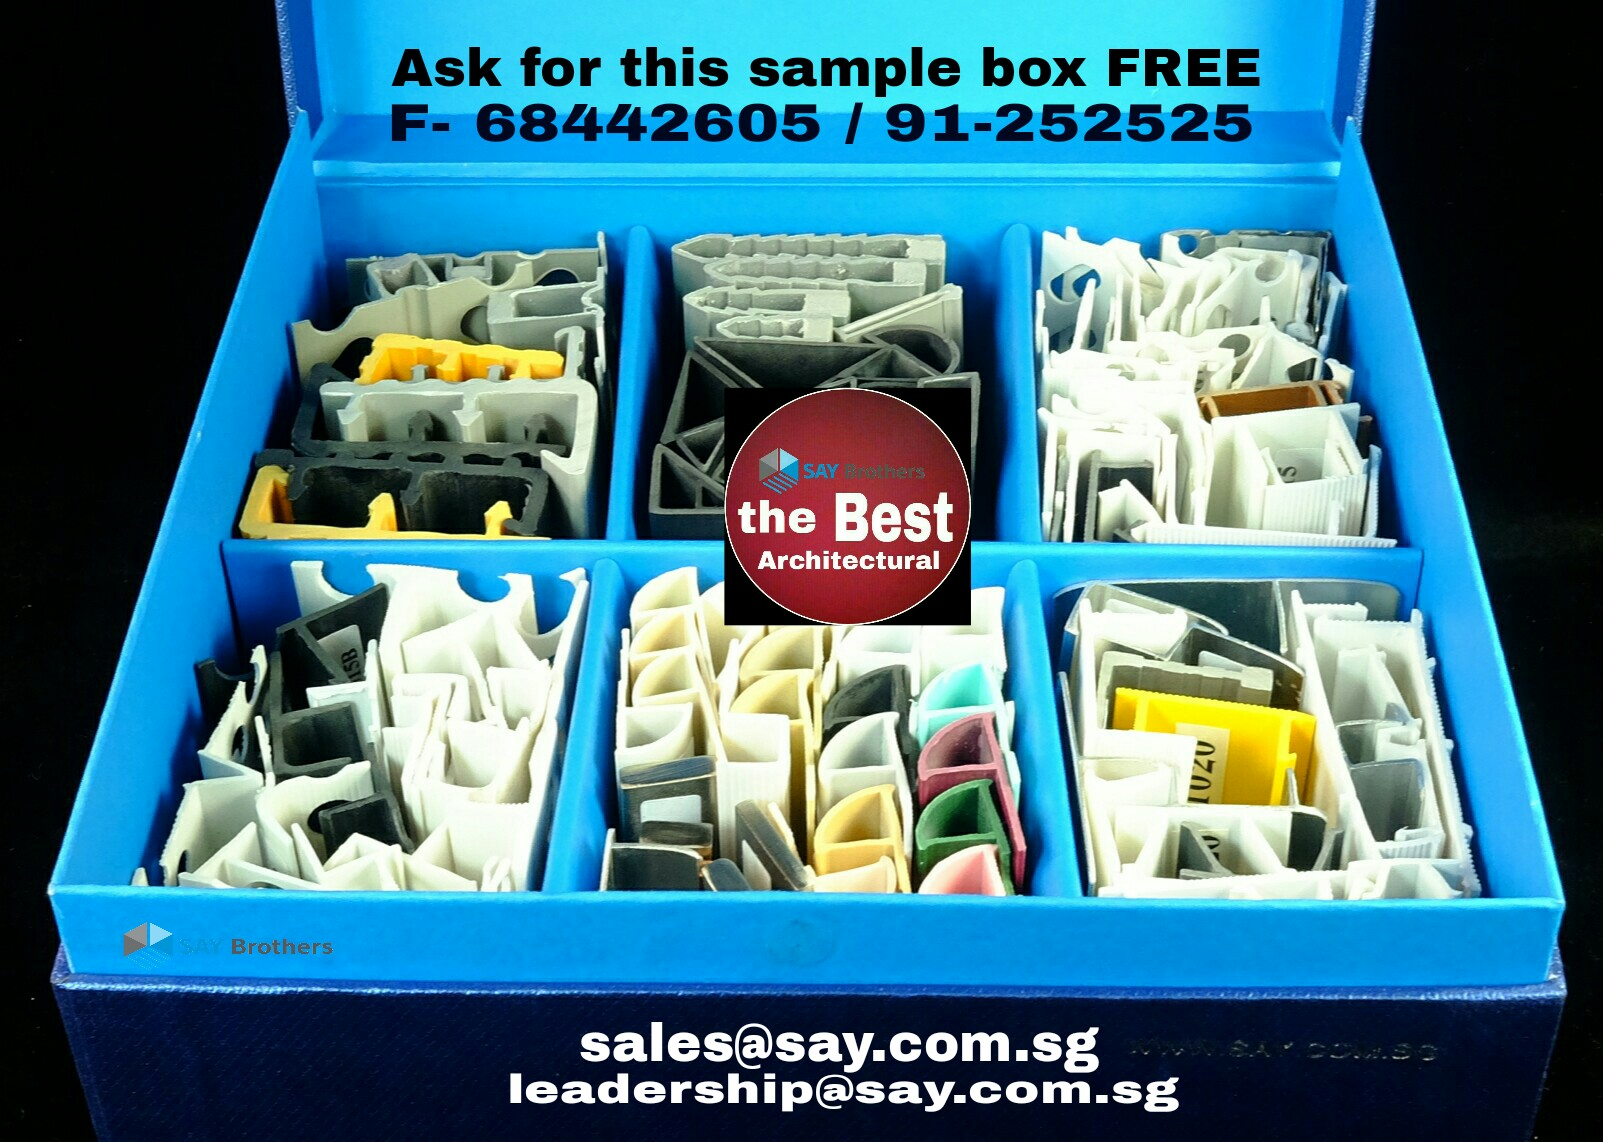 say-architectural-sample-box